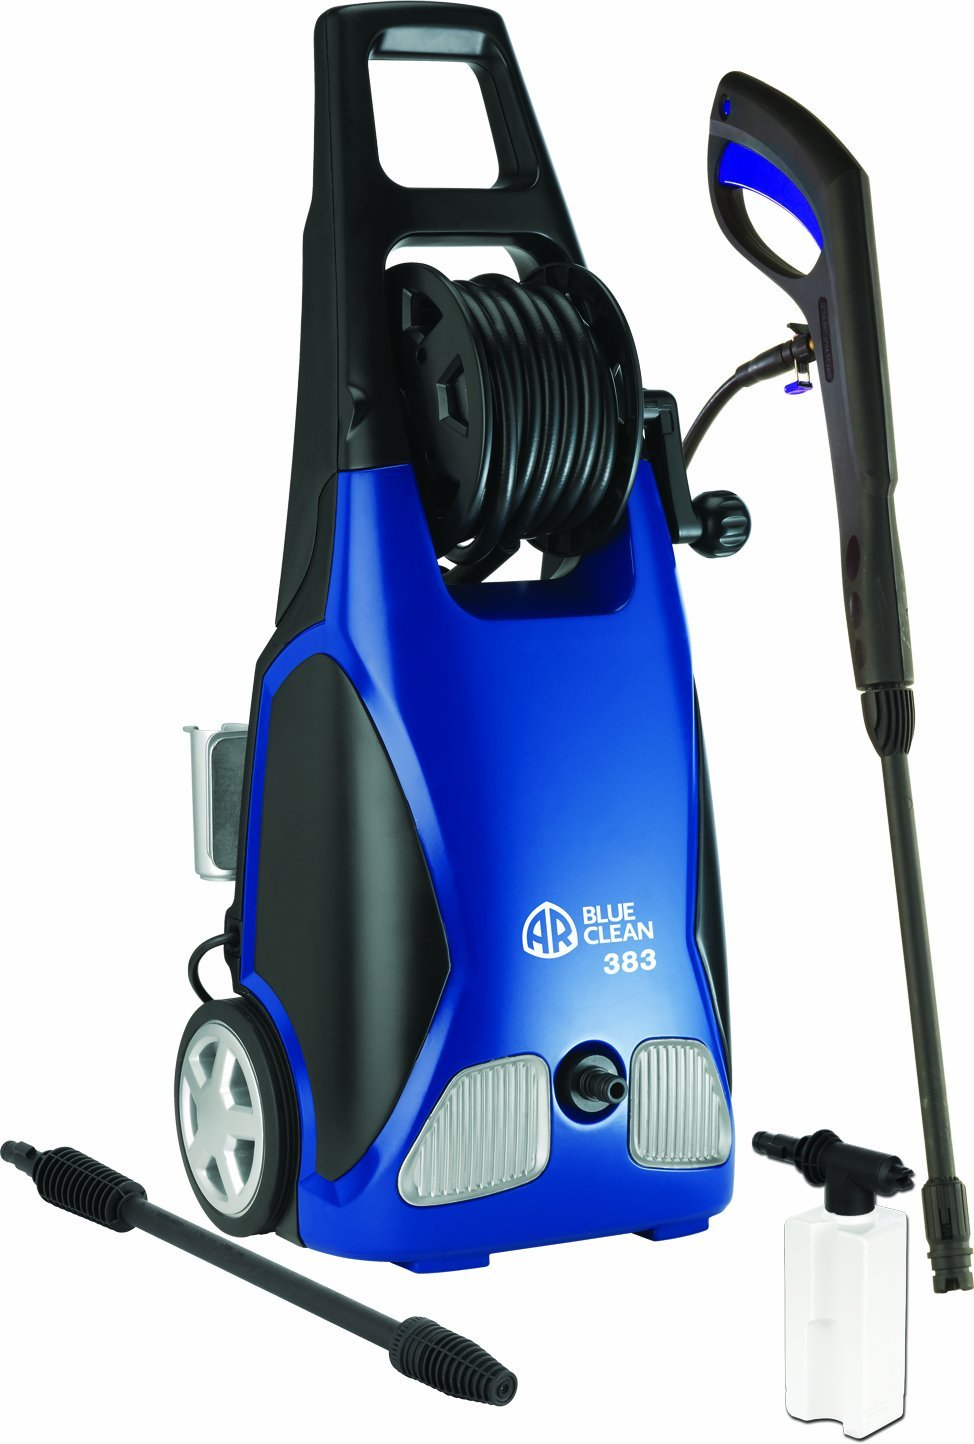 Review of AR Blue Clean AR383 1,900 PSI 1.5 GPM 14 Amp Elect ...